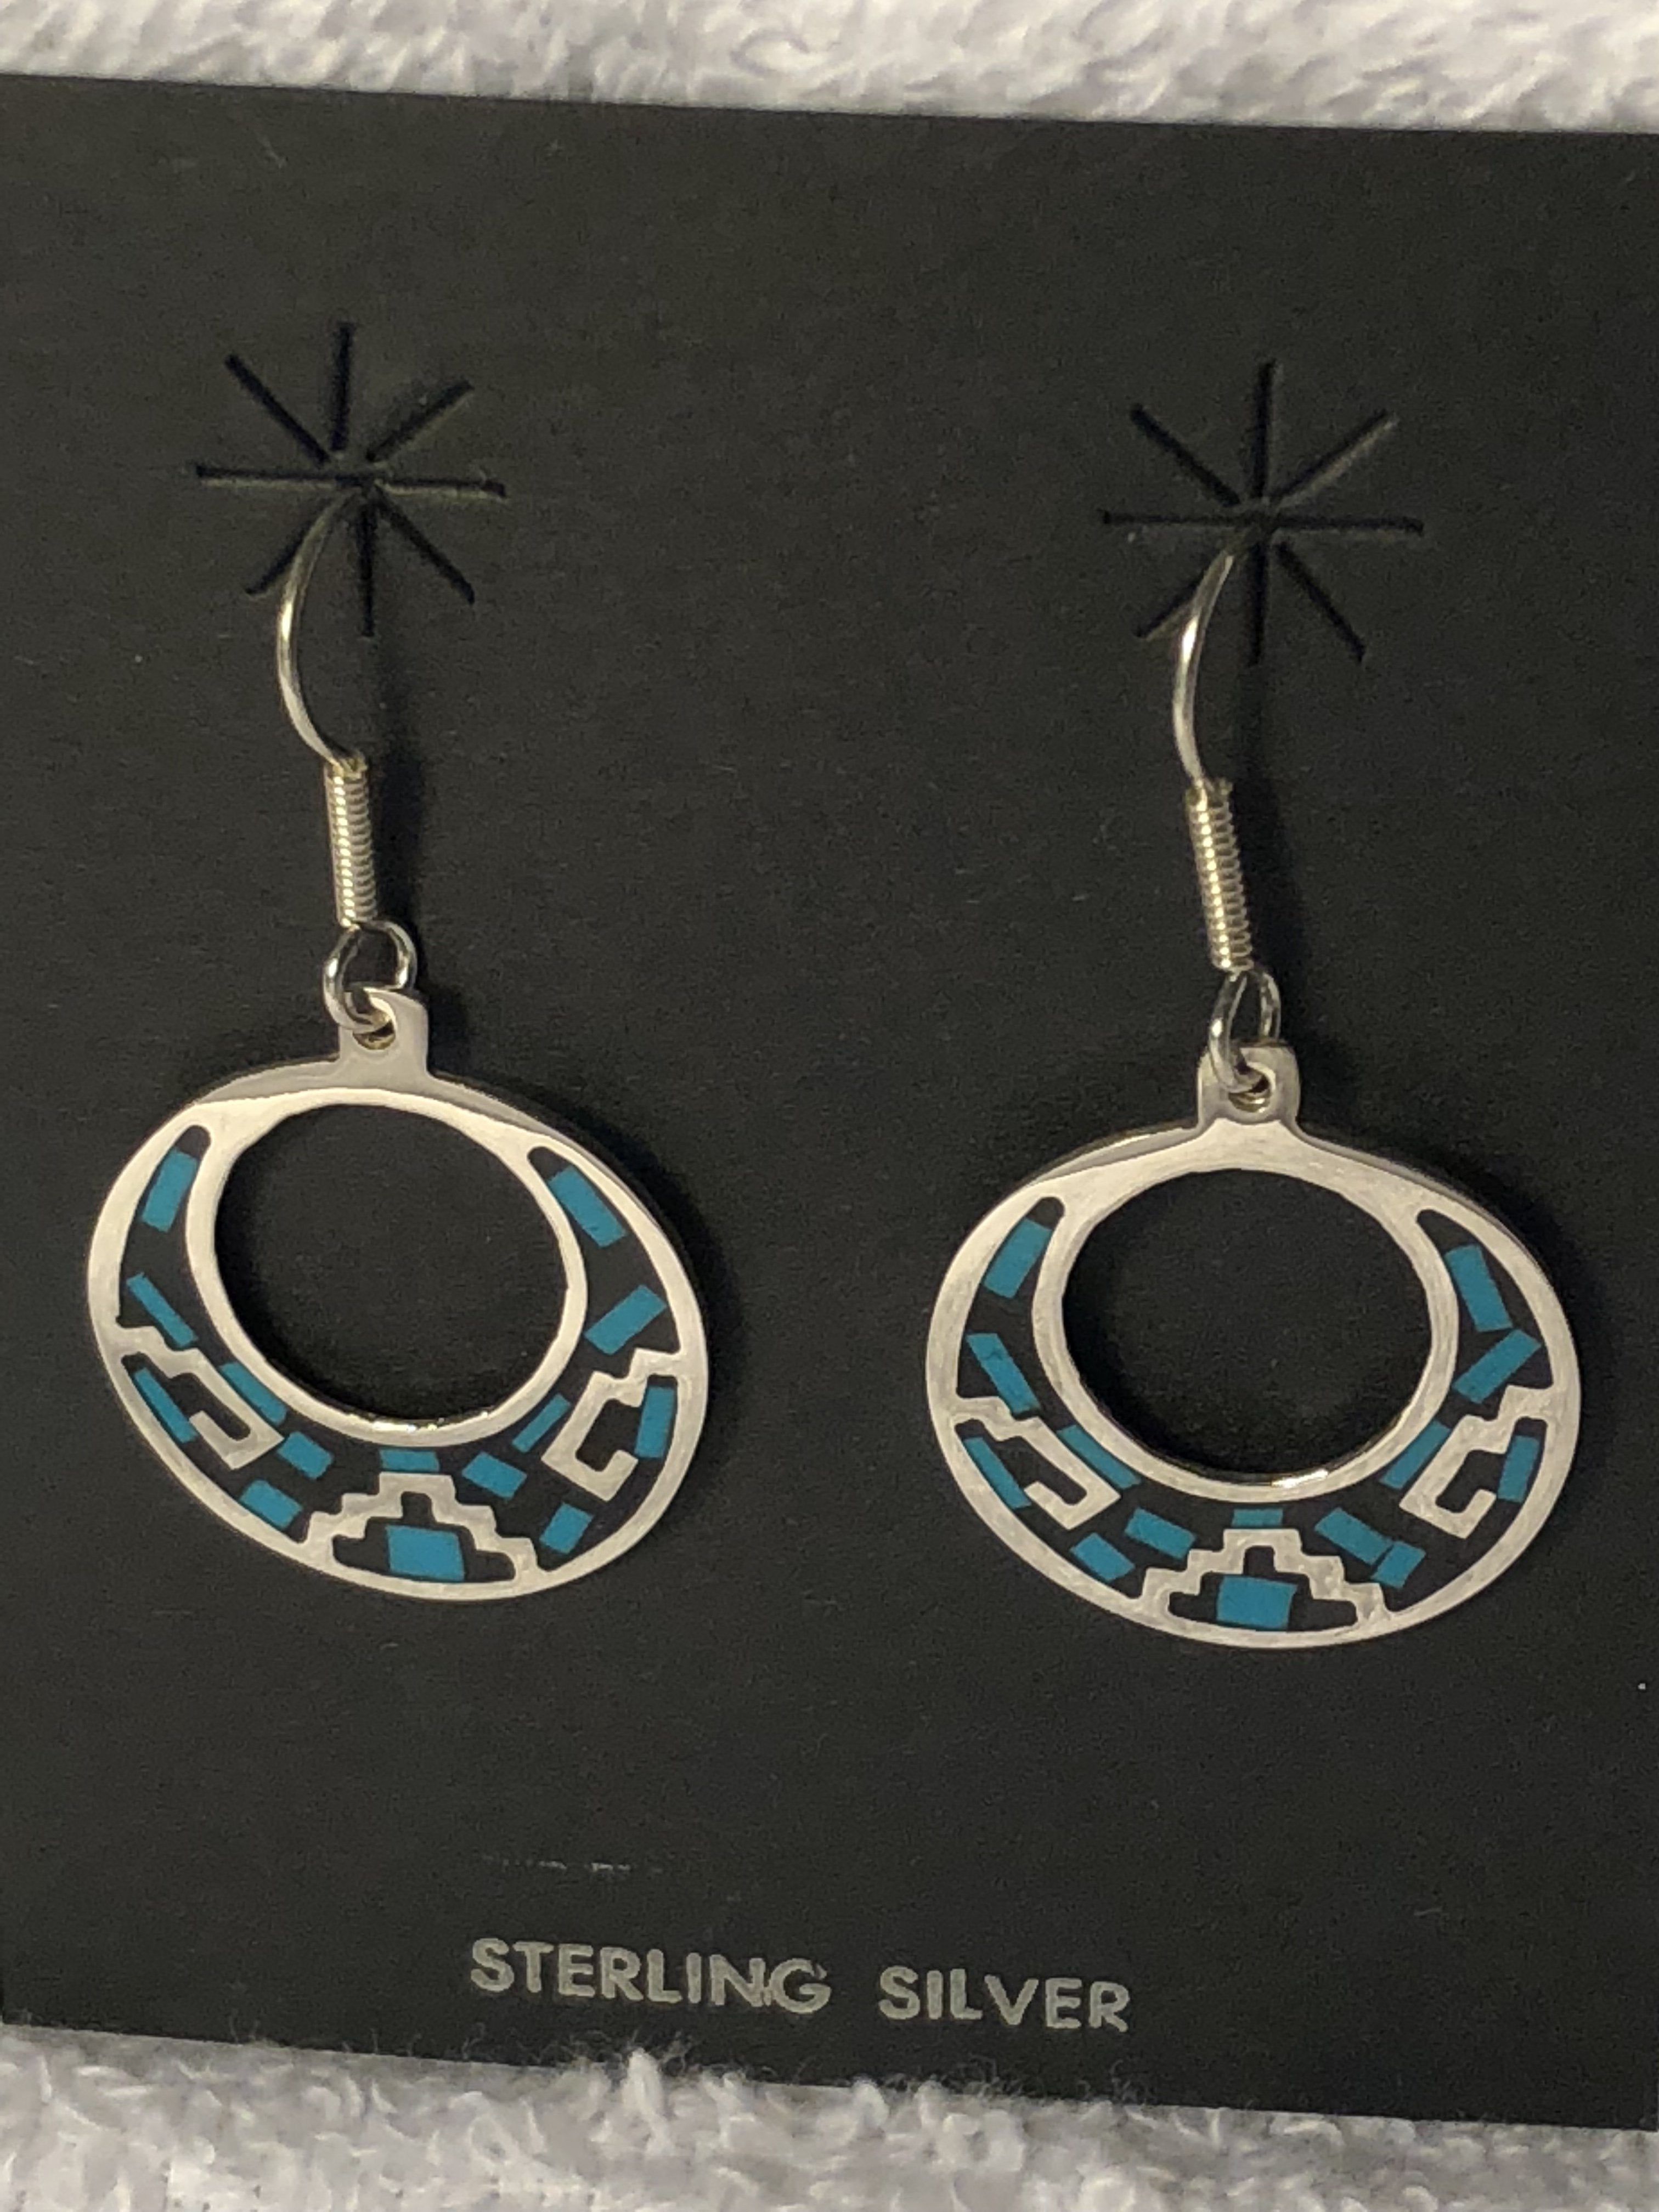 Turquoise color stone inlay sterling silver earrings. A-11.. Use code SAVE50 at checlout to save 50%